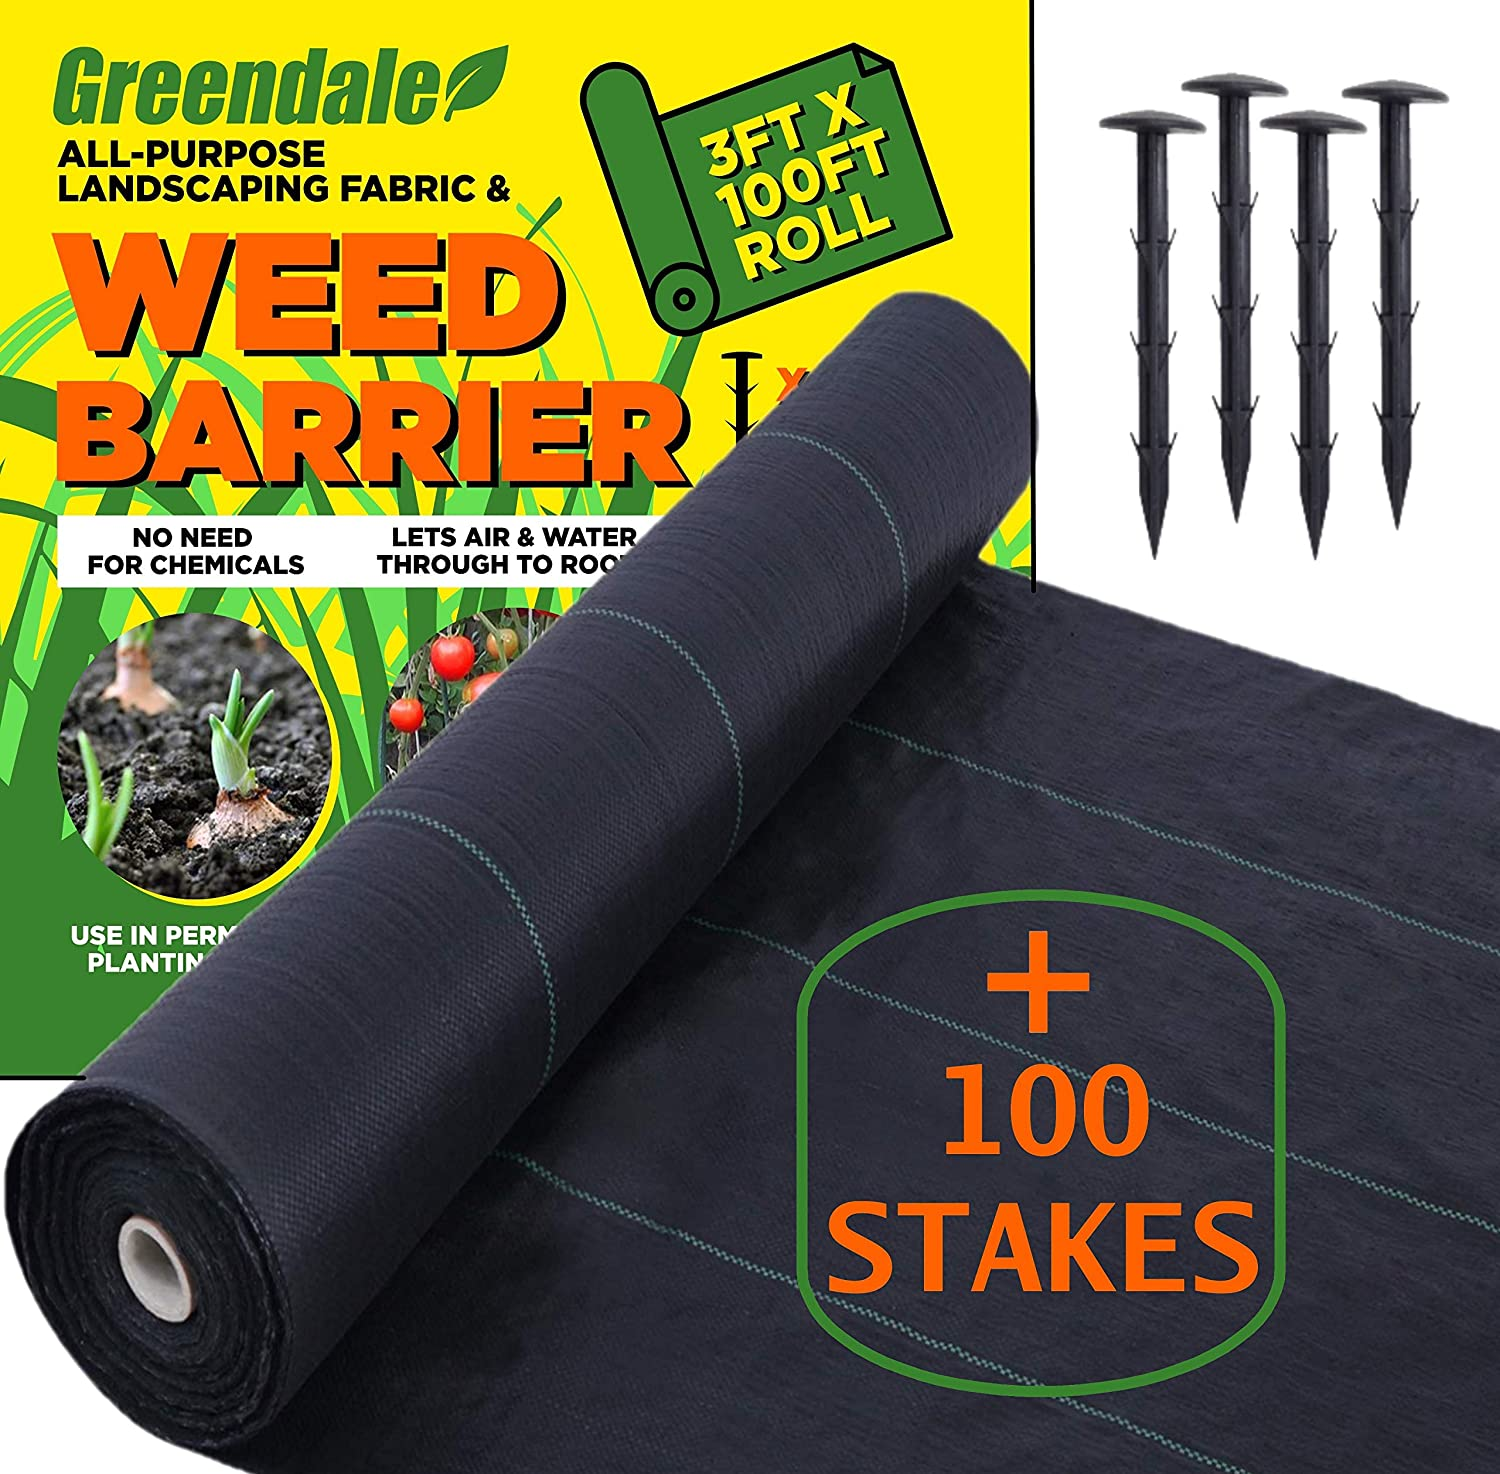 Greendale - 3ft x 100ft Roll - Plus 100 Garden Stakes - Landscape Weed Barrier Ground Cover Fabric - Heavy Duty Landscaping